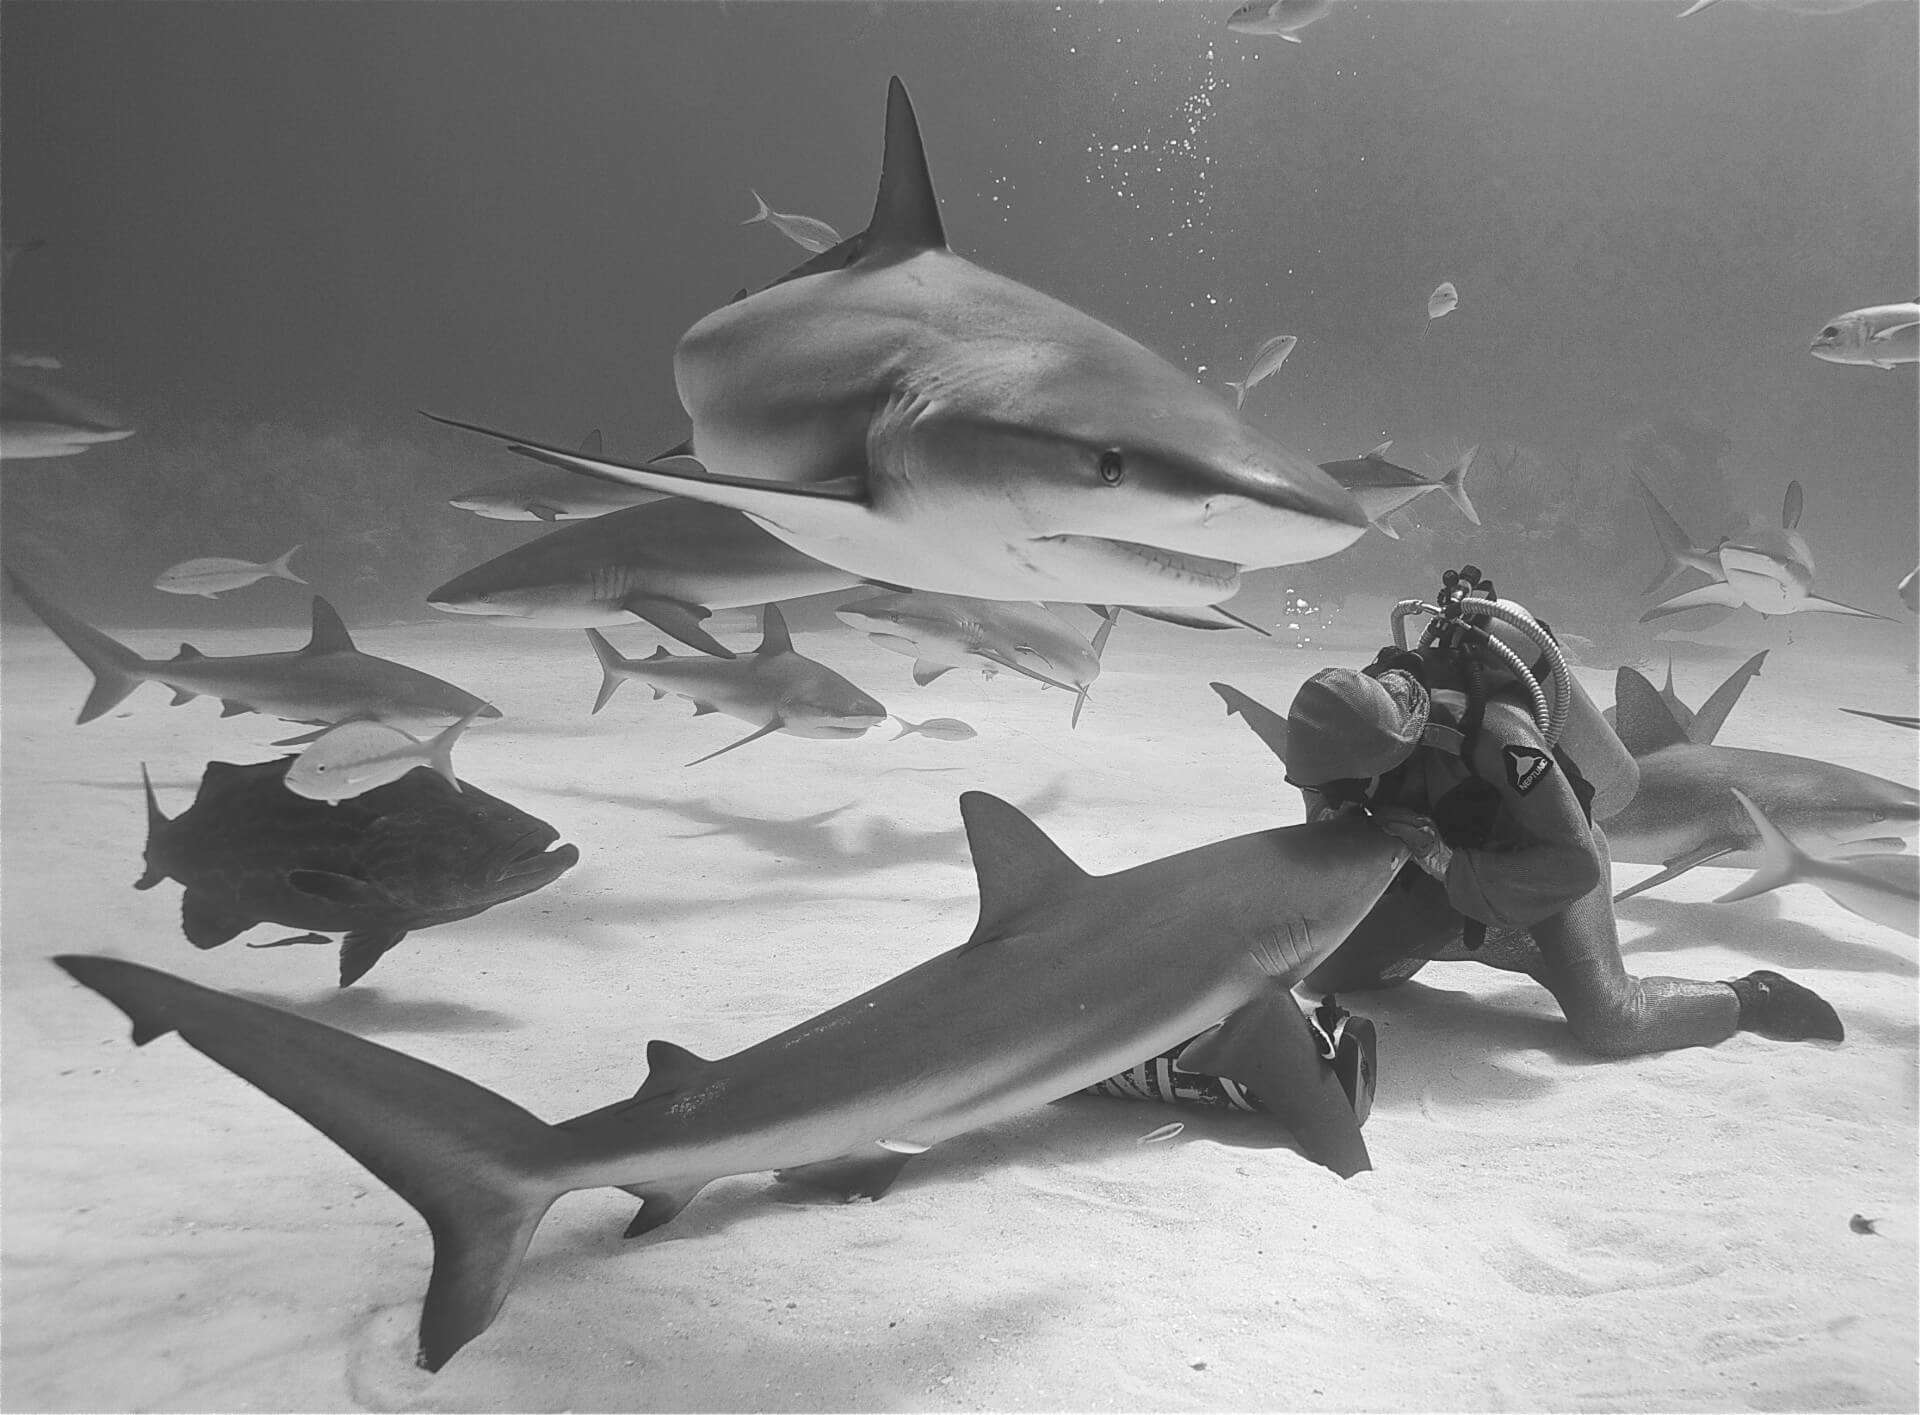 Cristina Zenato—Fierce Female Shark Professional and Ocean Entrepreneur 7